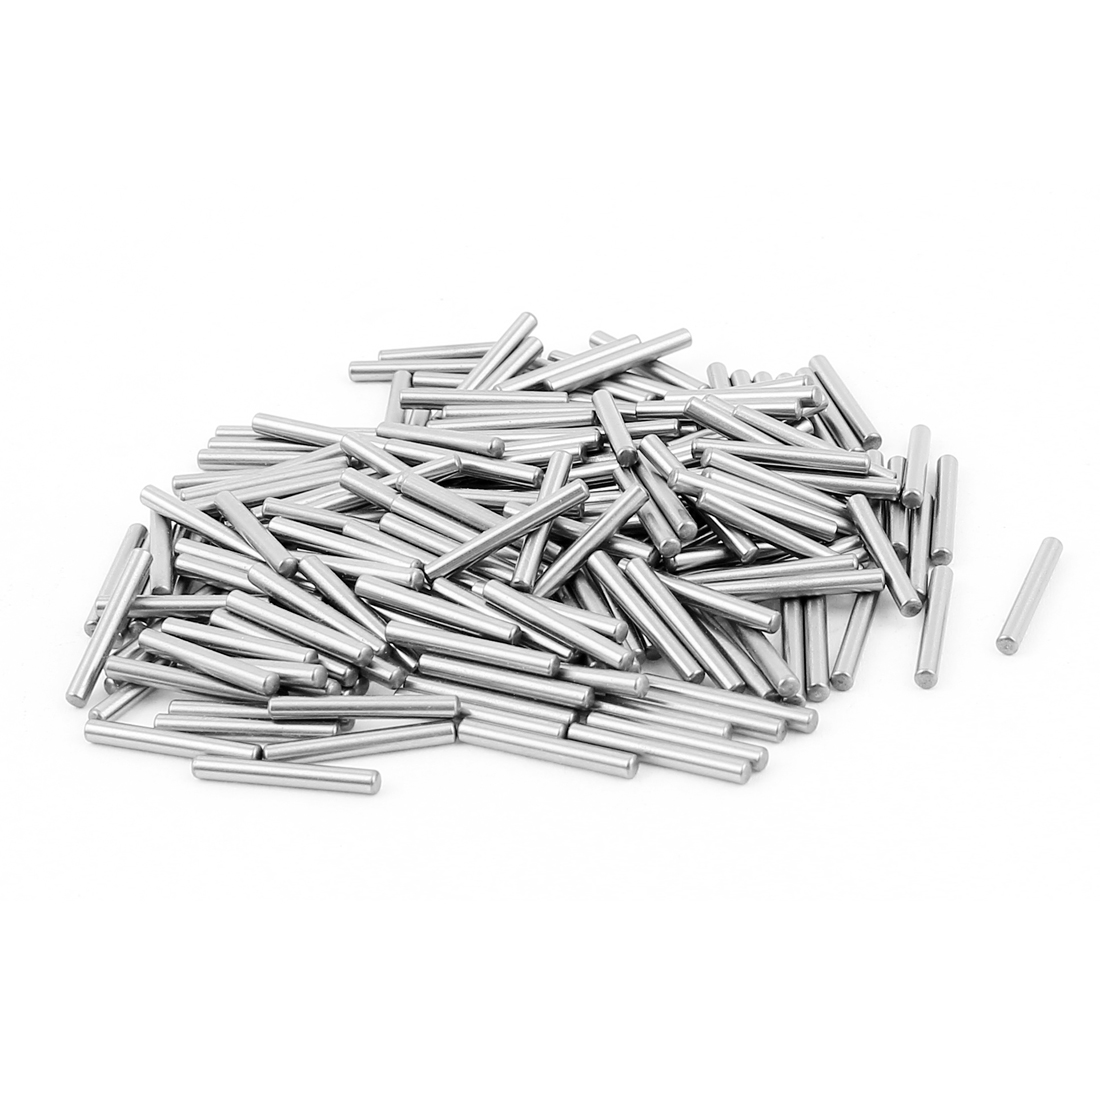 2mm x 15.8mm Stainless Steel Parallel Dowel Pins Fasten Elements 200pcs